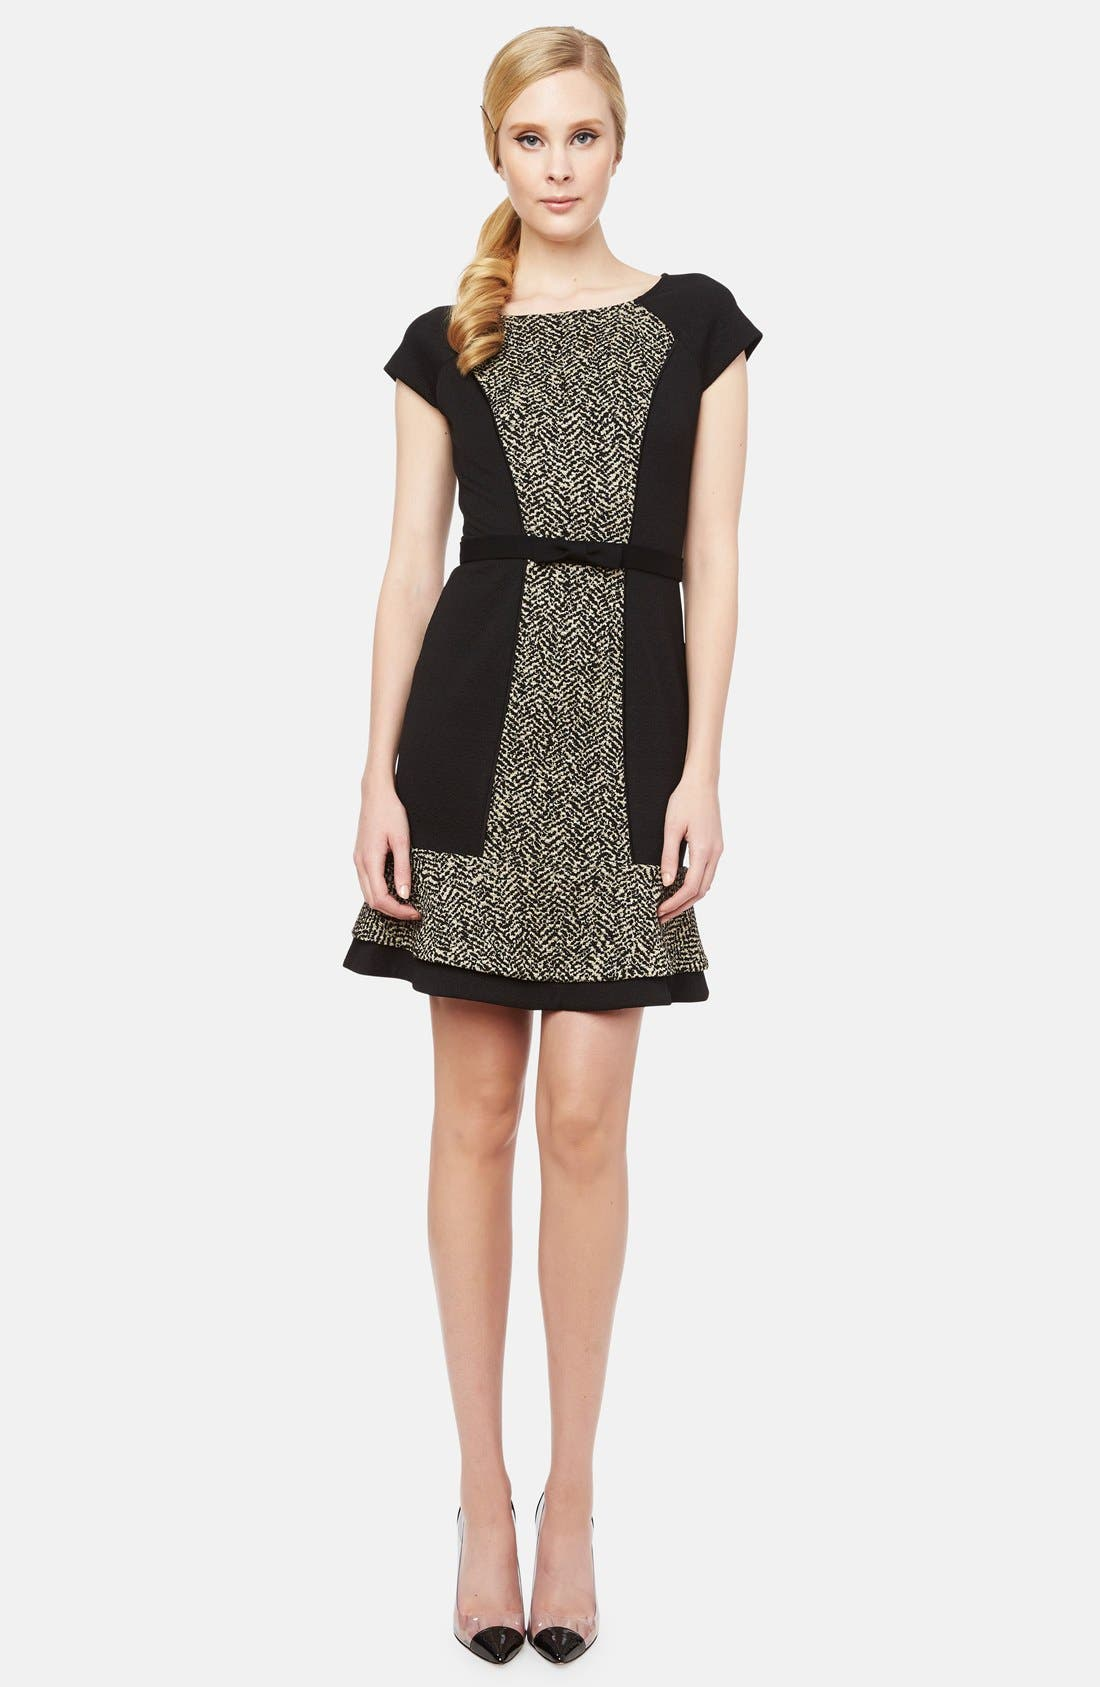 Main Image - ERIN erin fetherston 'Liza' Belted Jacquard Fit & Flare Dress